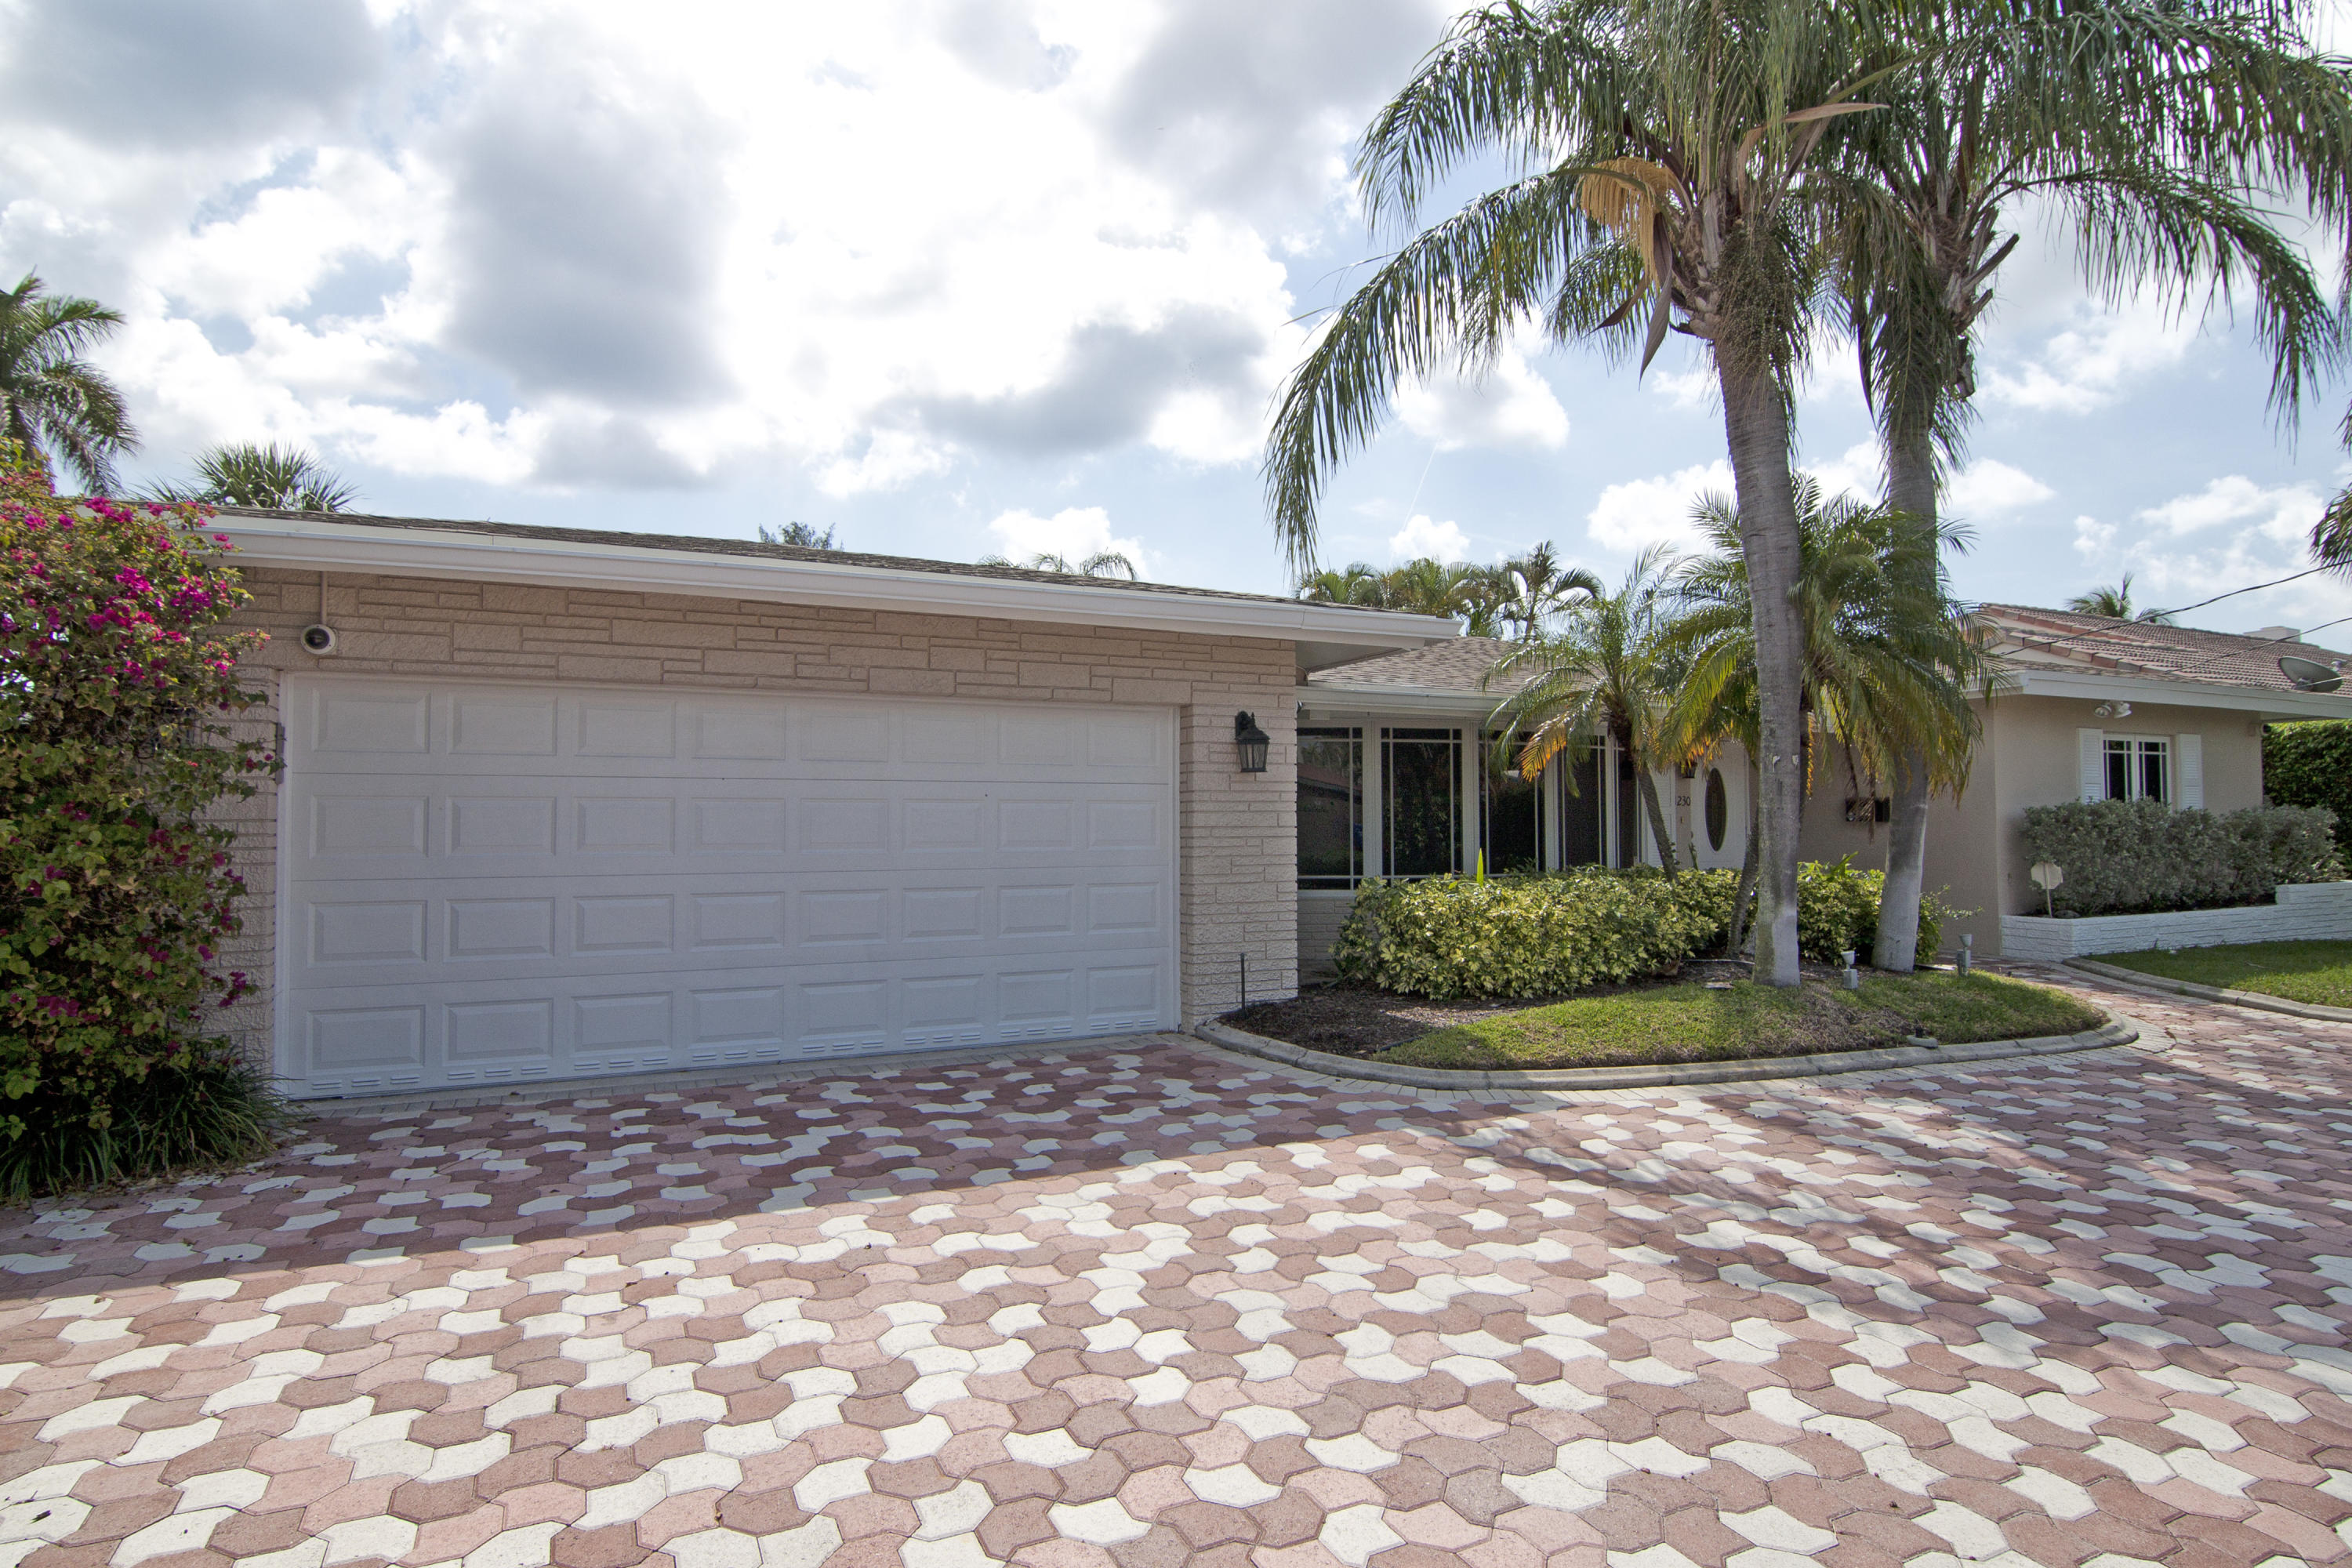 COUNTRY CLUB ISLES REALTY